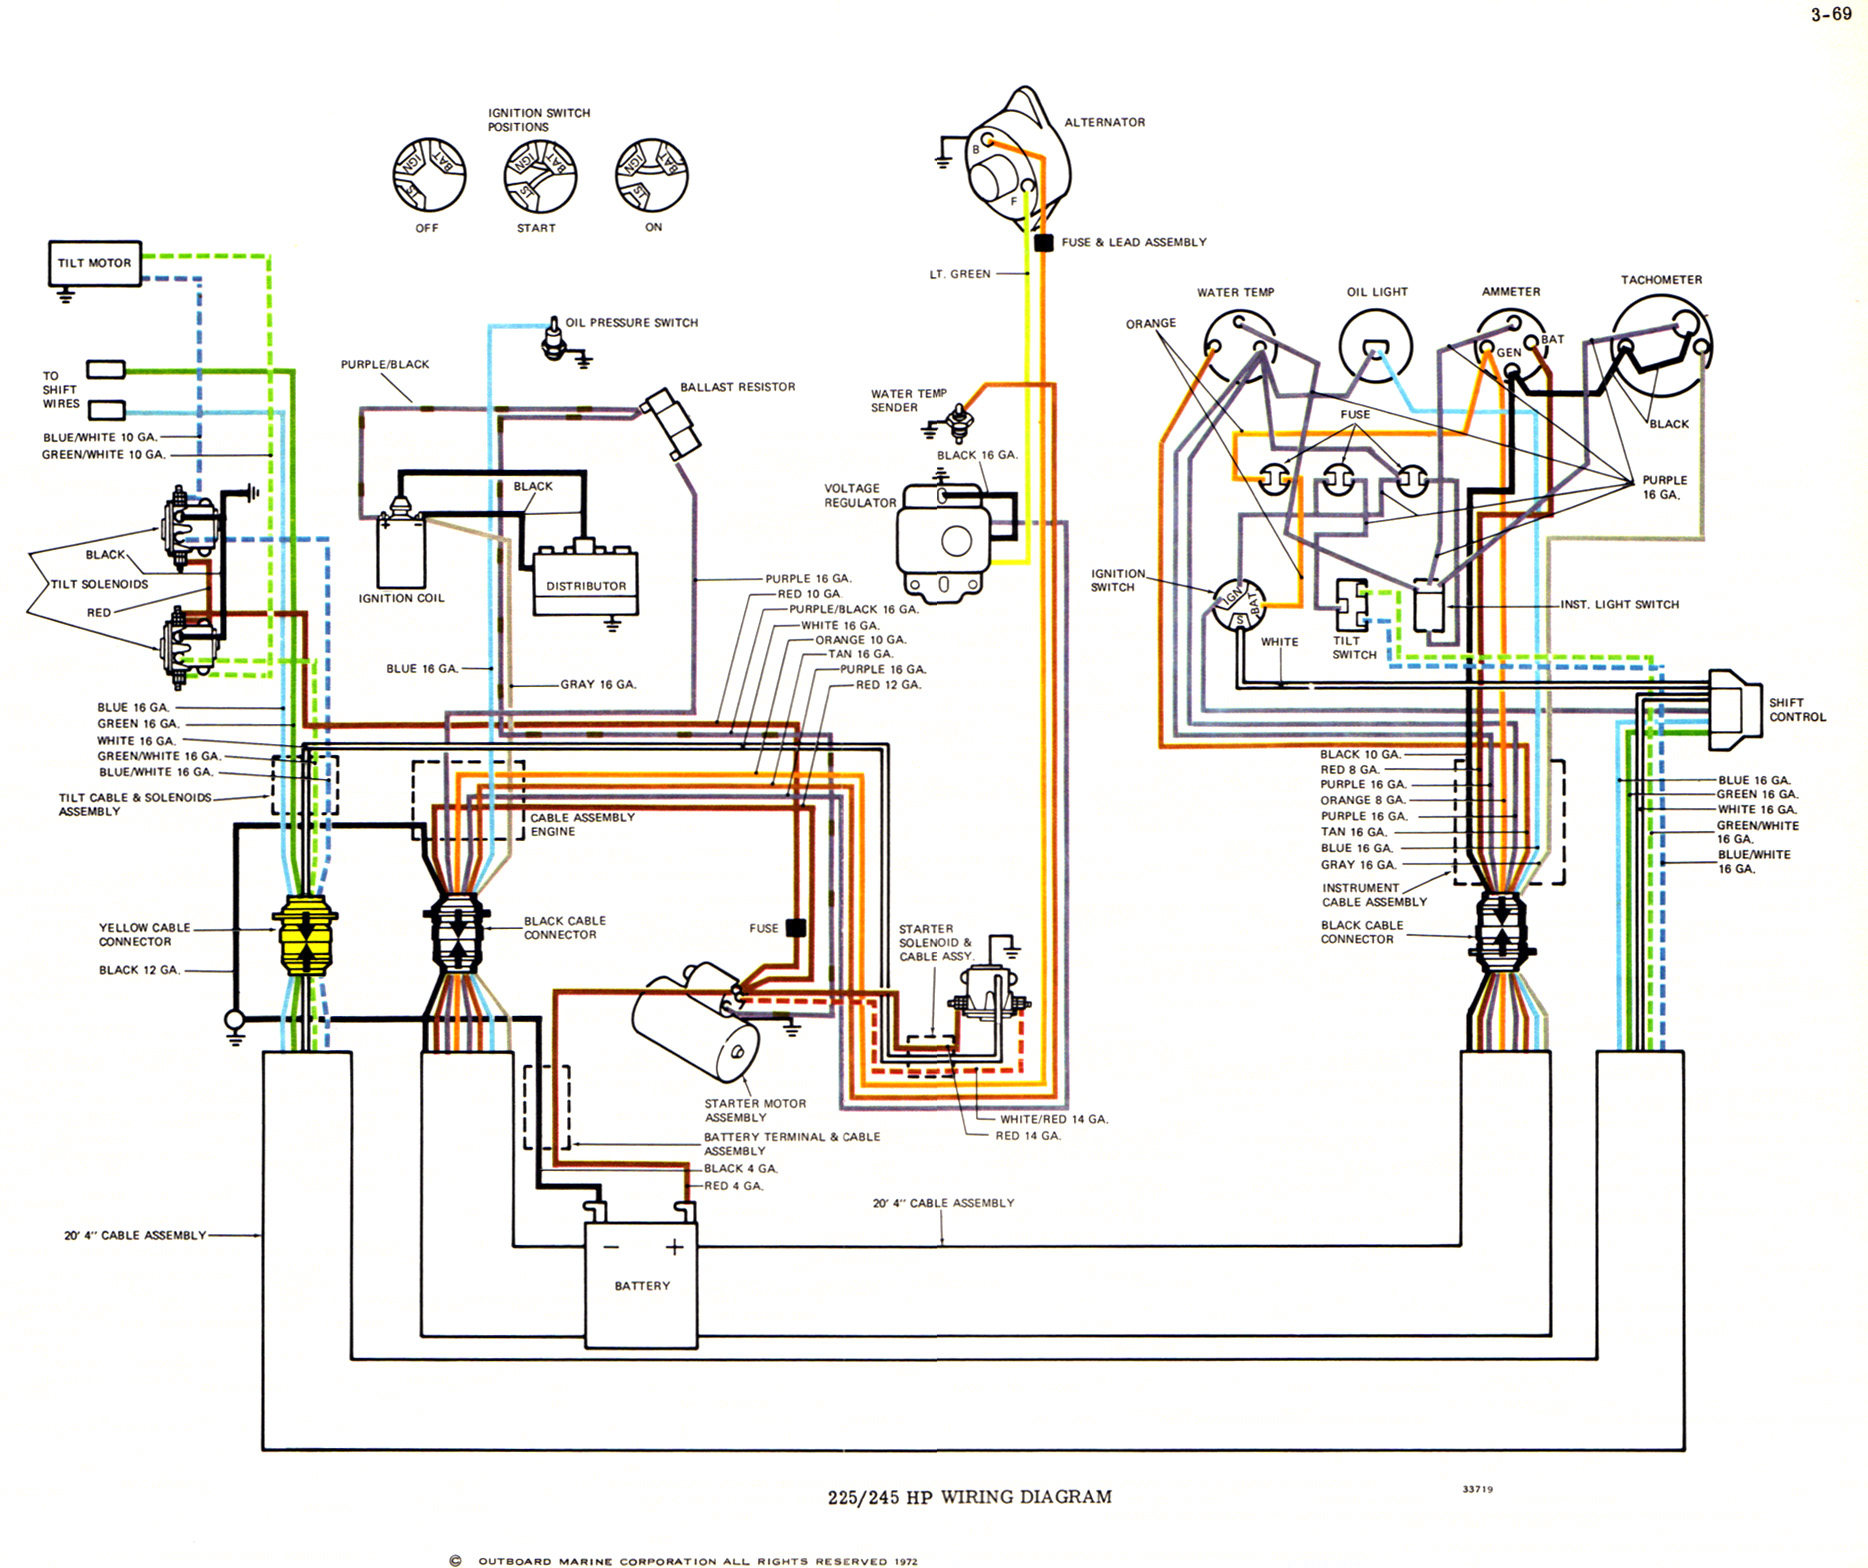 73_OMC_V8_all_big omc wiring diagram 1967 johnson 40 wiring diagram \u2022 wiring yamaha ttr 225 wiring diagram at honlapkeszites.co